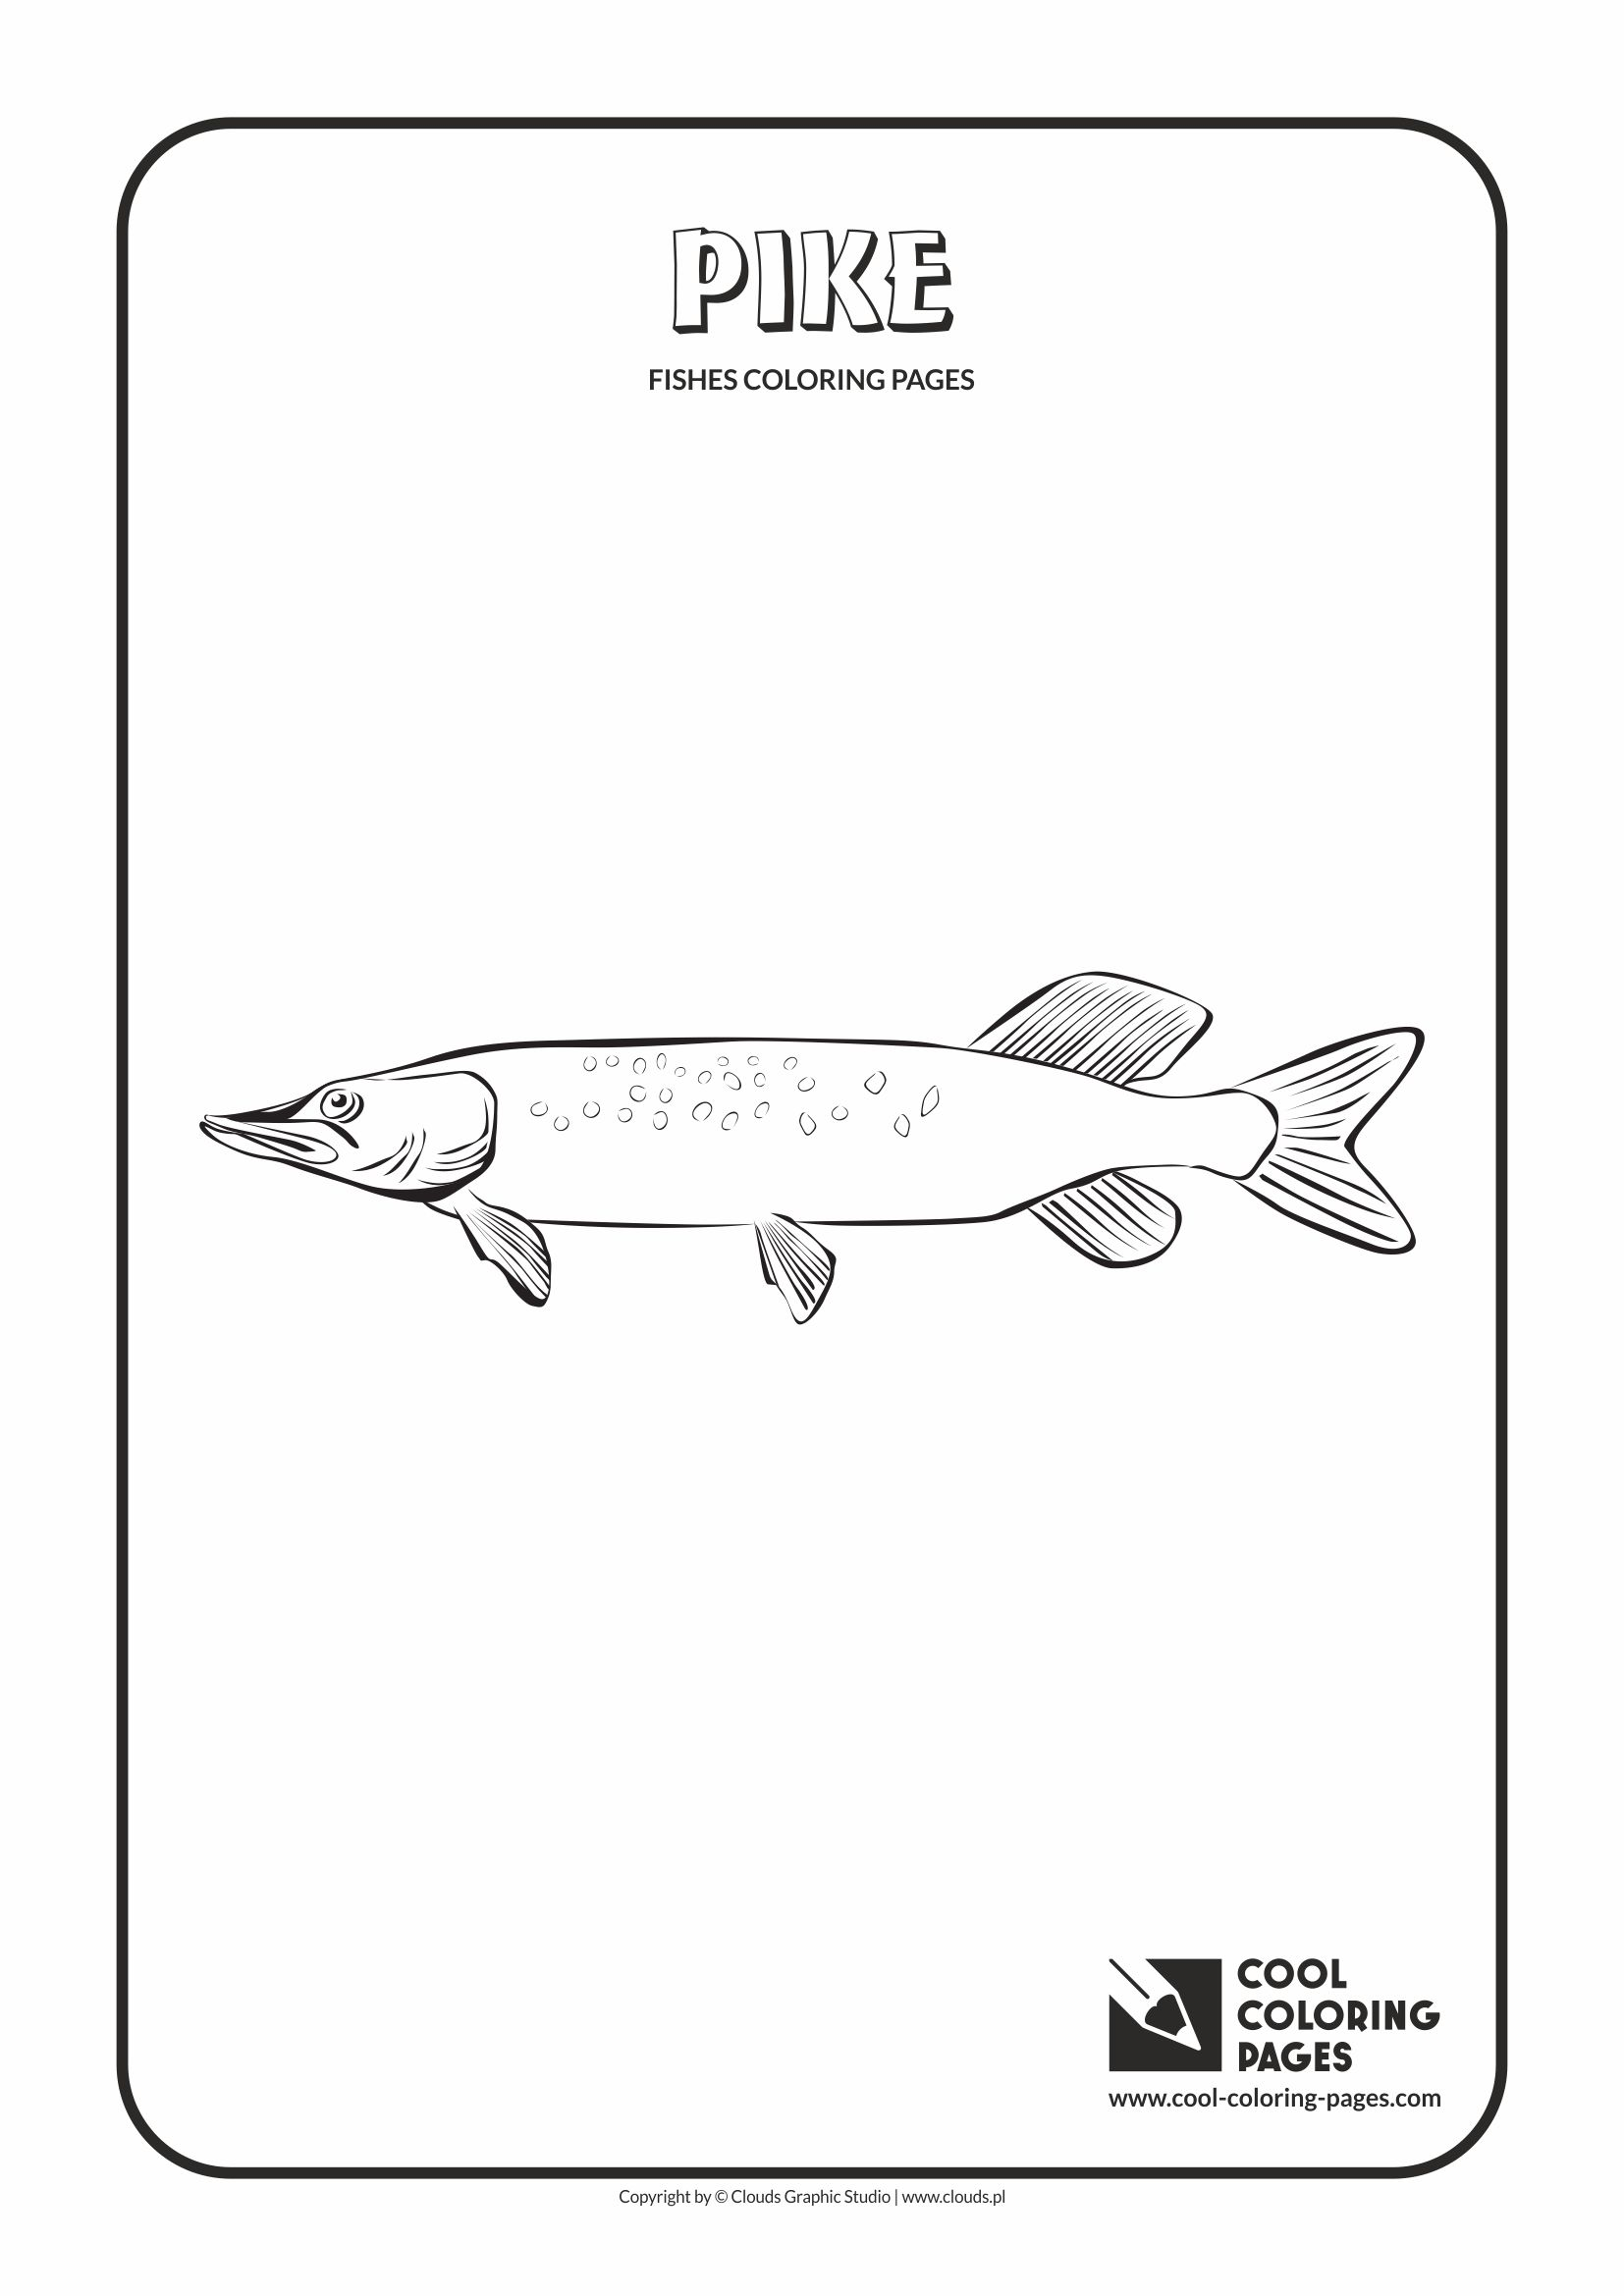 pike coloring page cool coloring pages